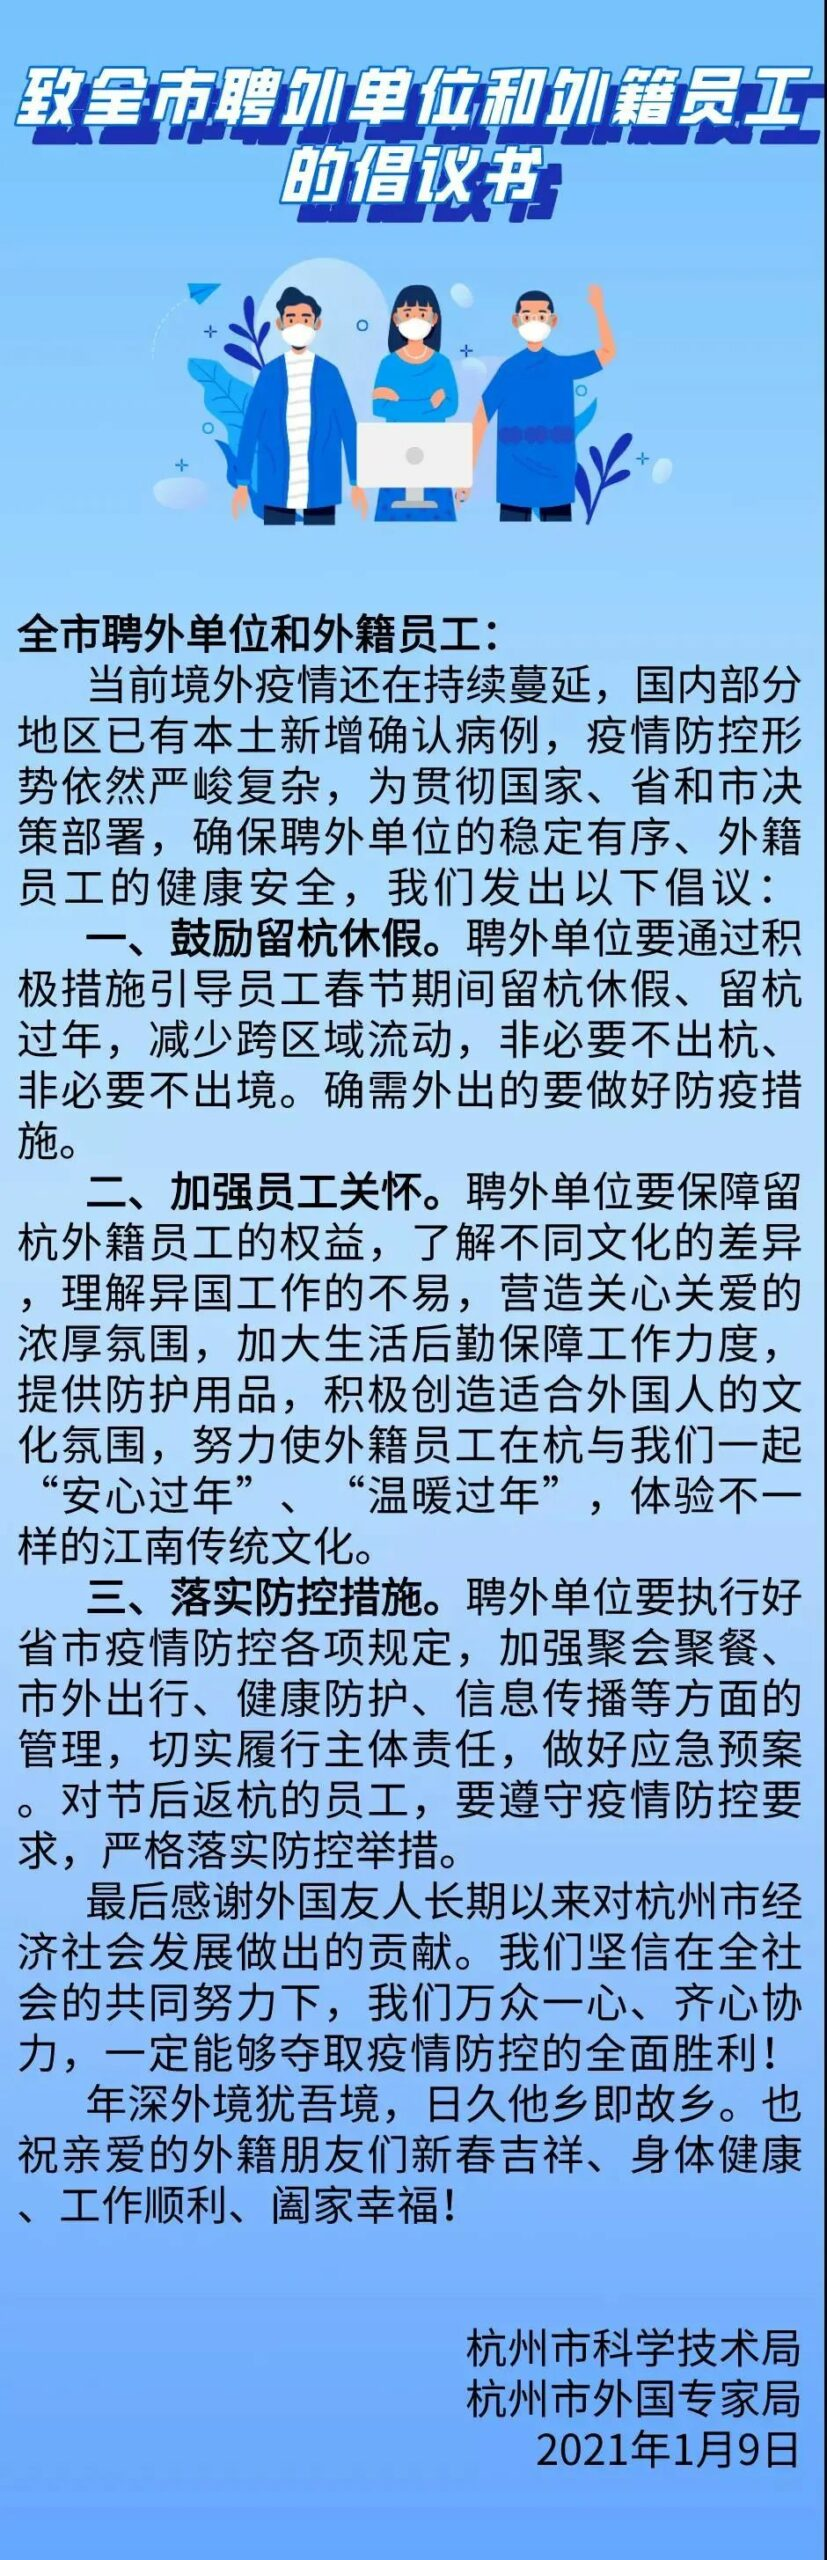 A Proposal To All Foreign Nationals And Employers In Hangzhou